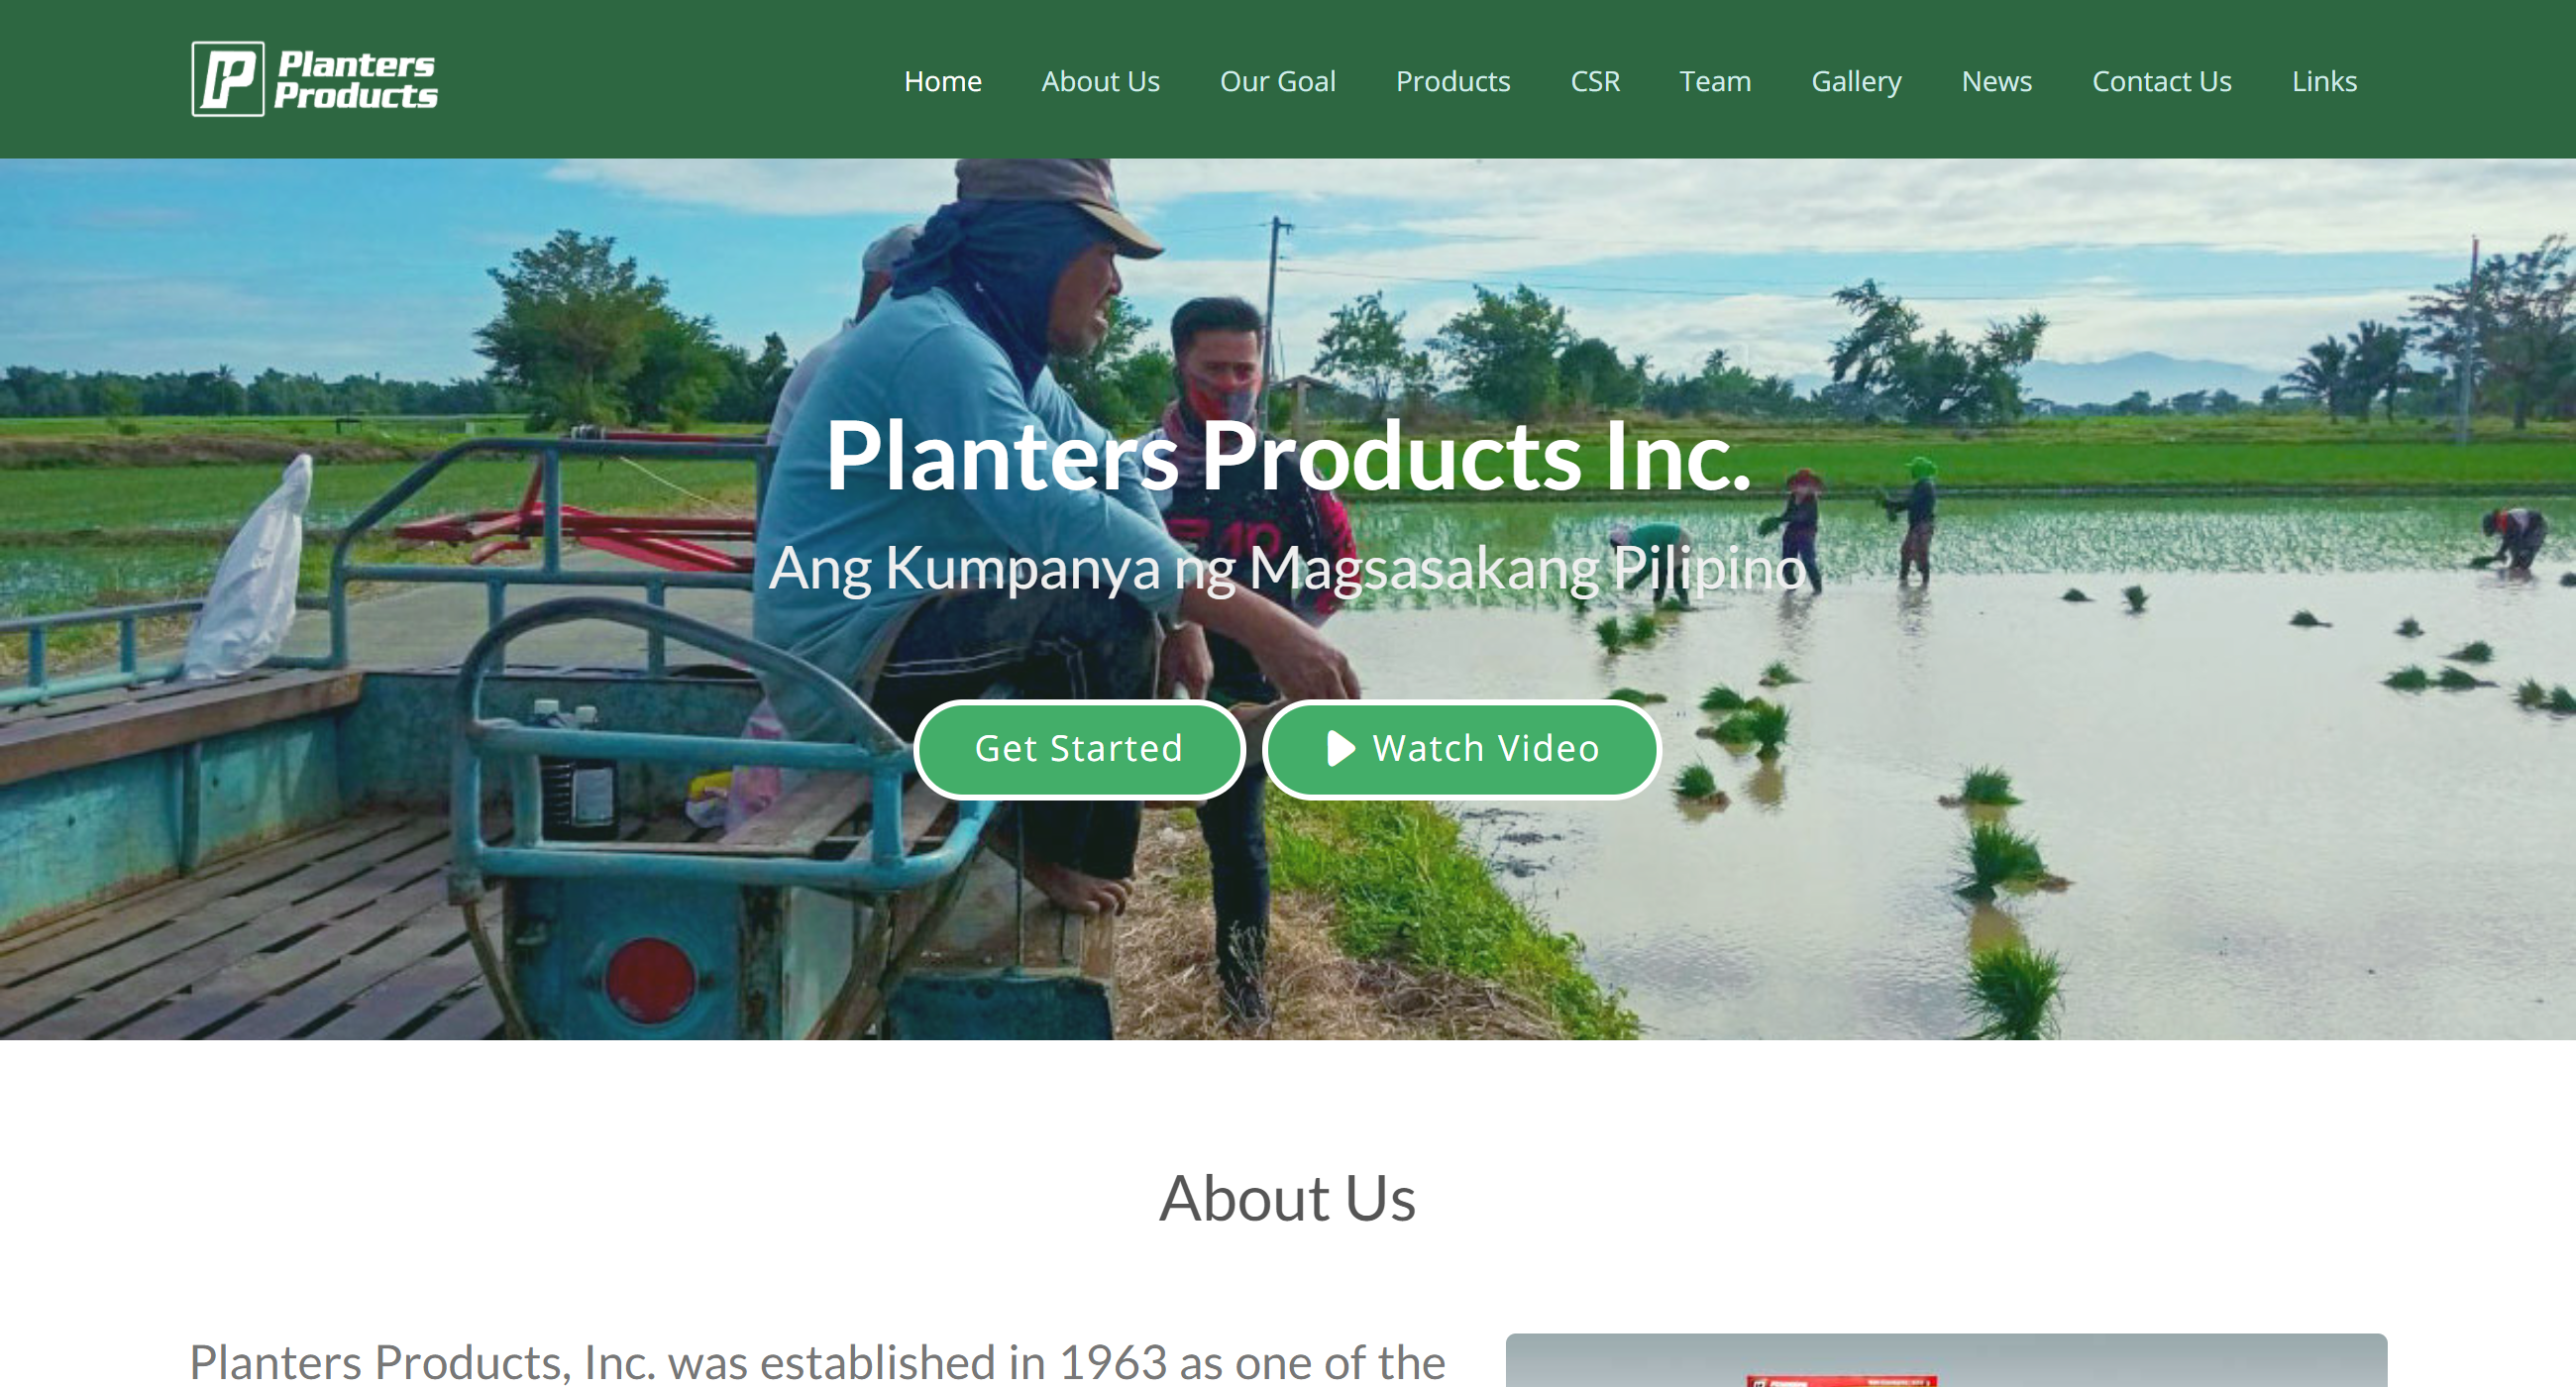 Planters Products Inc. website